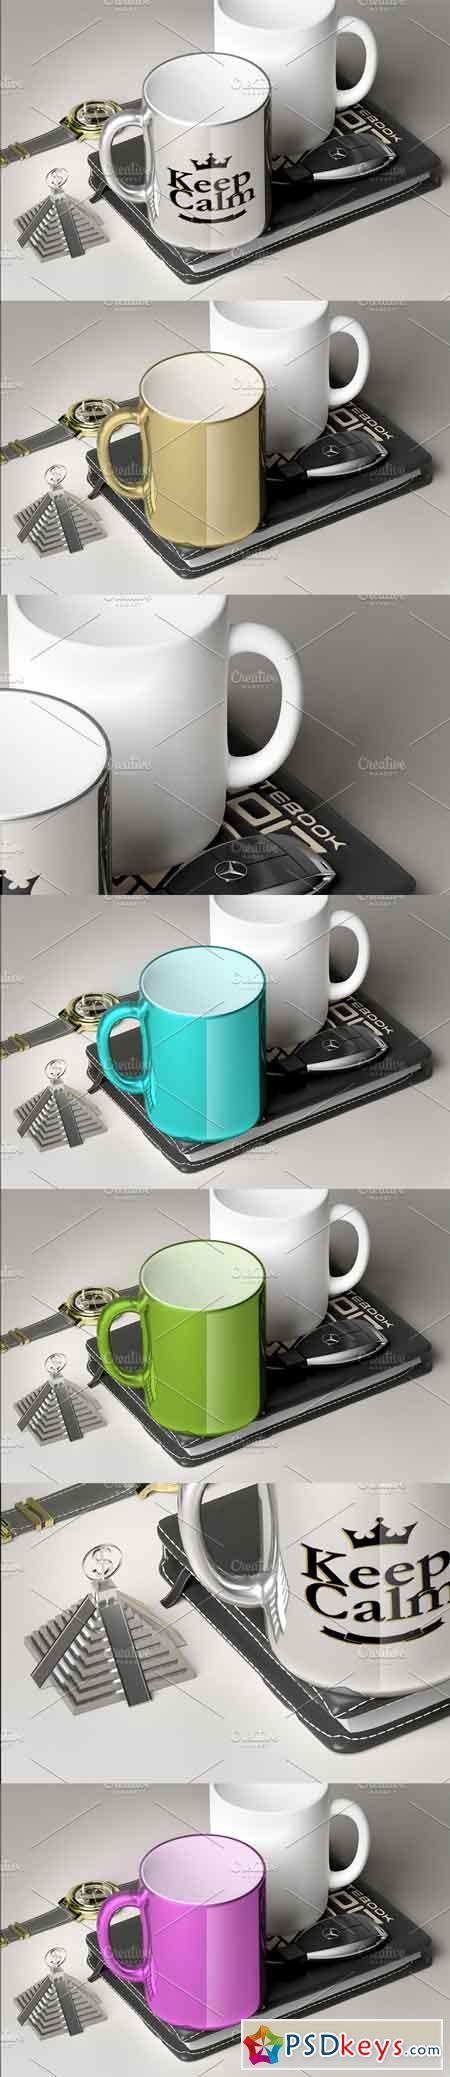 Chromed Luxury Mug - Mockup 2724363